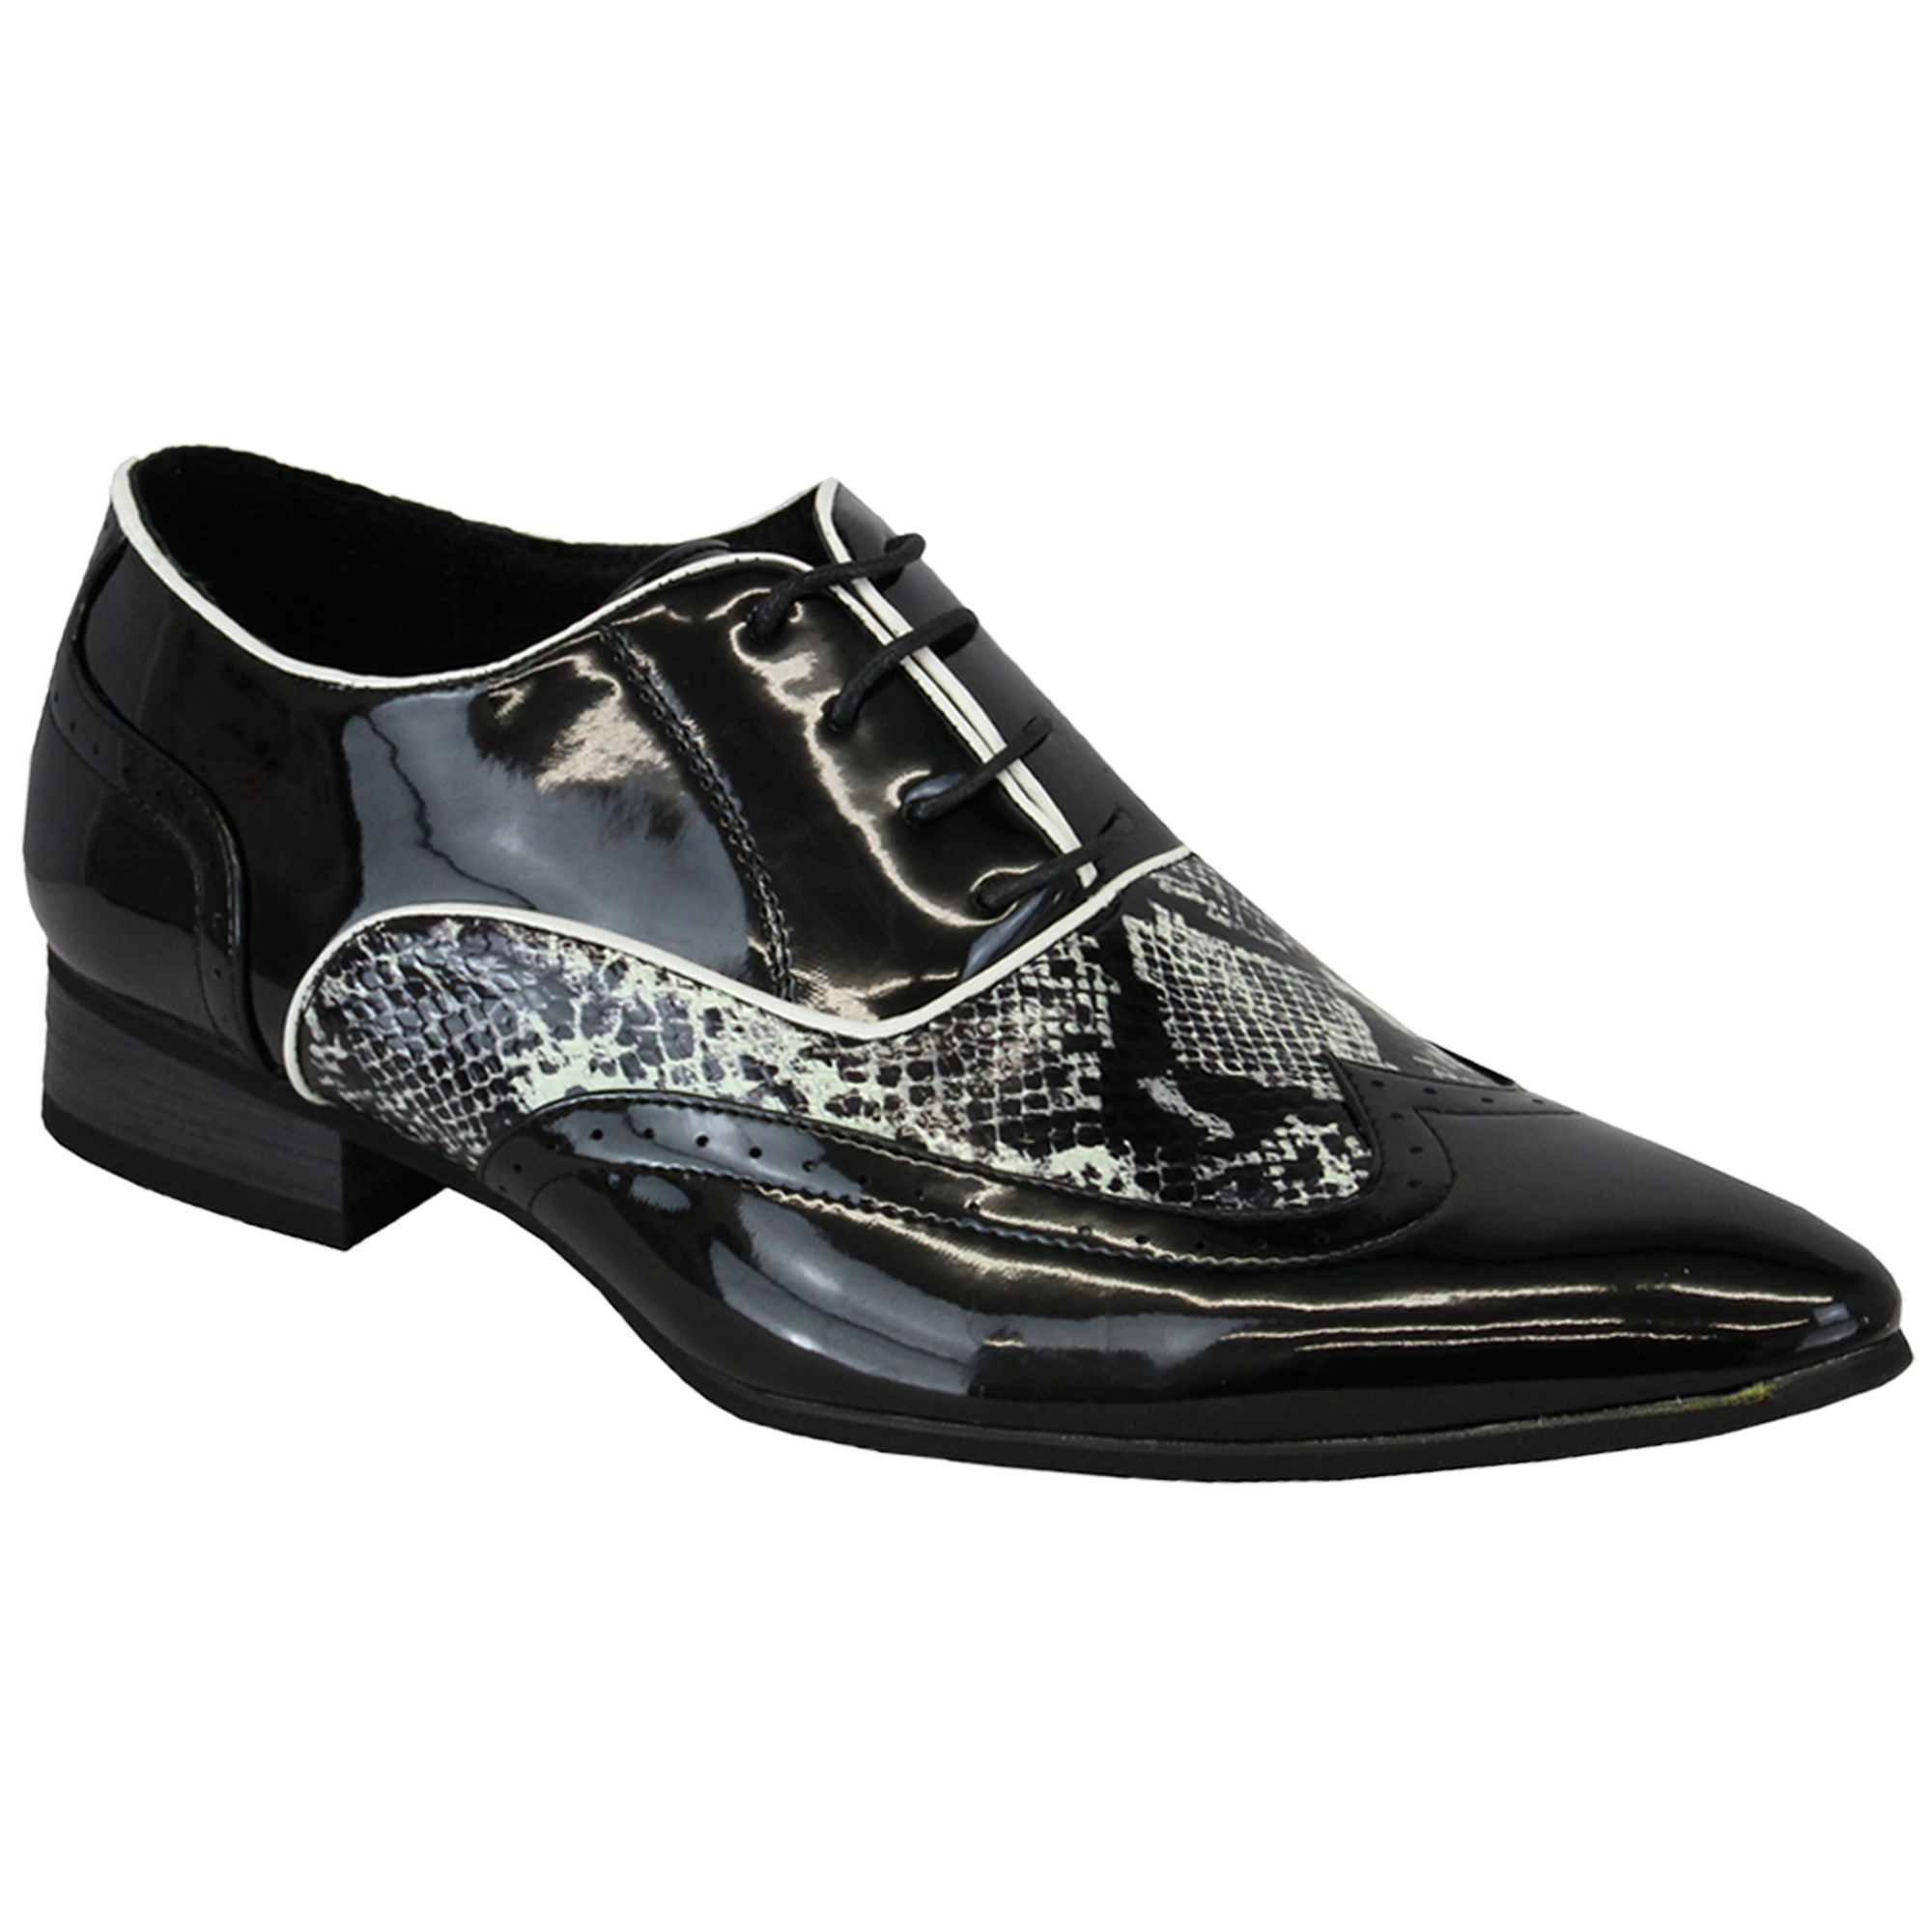 mens italian shoes brogue formal two tone lace up patent